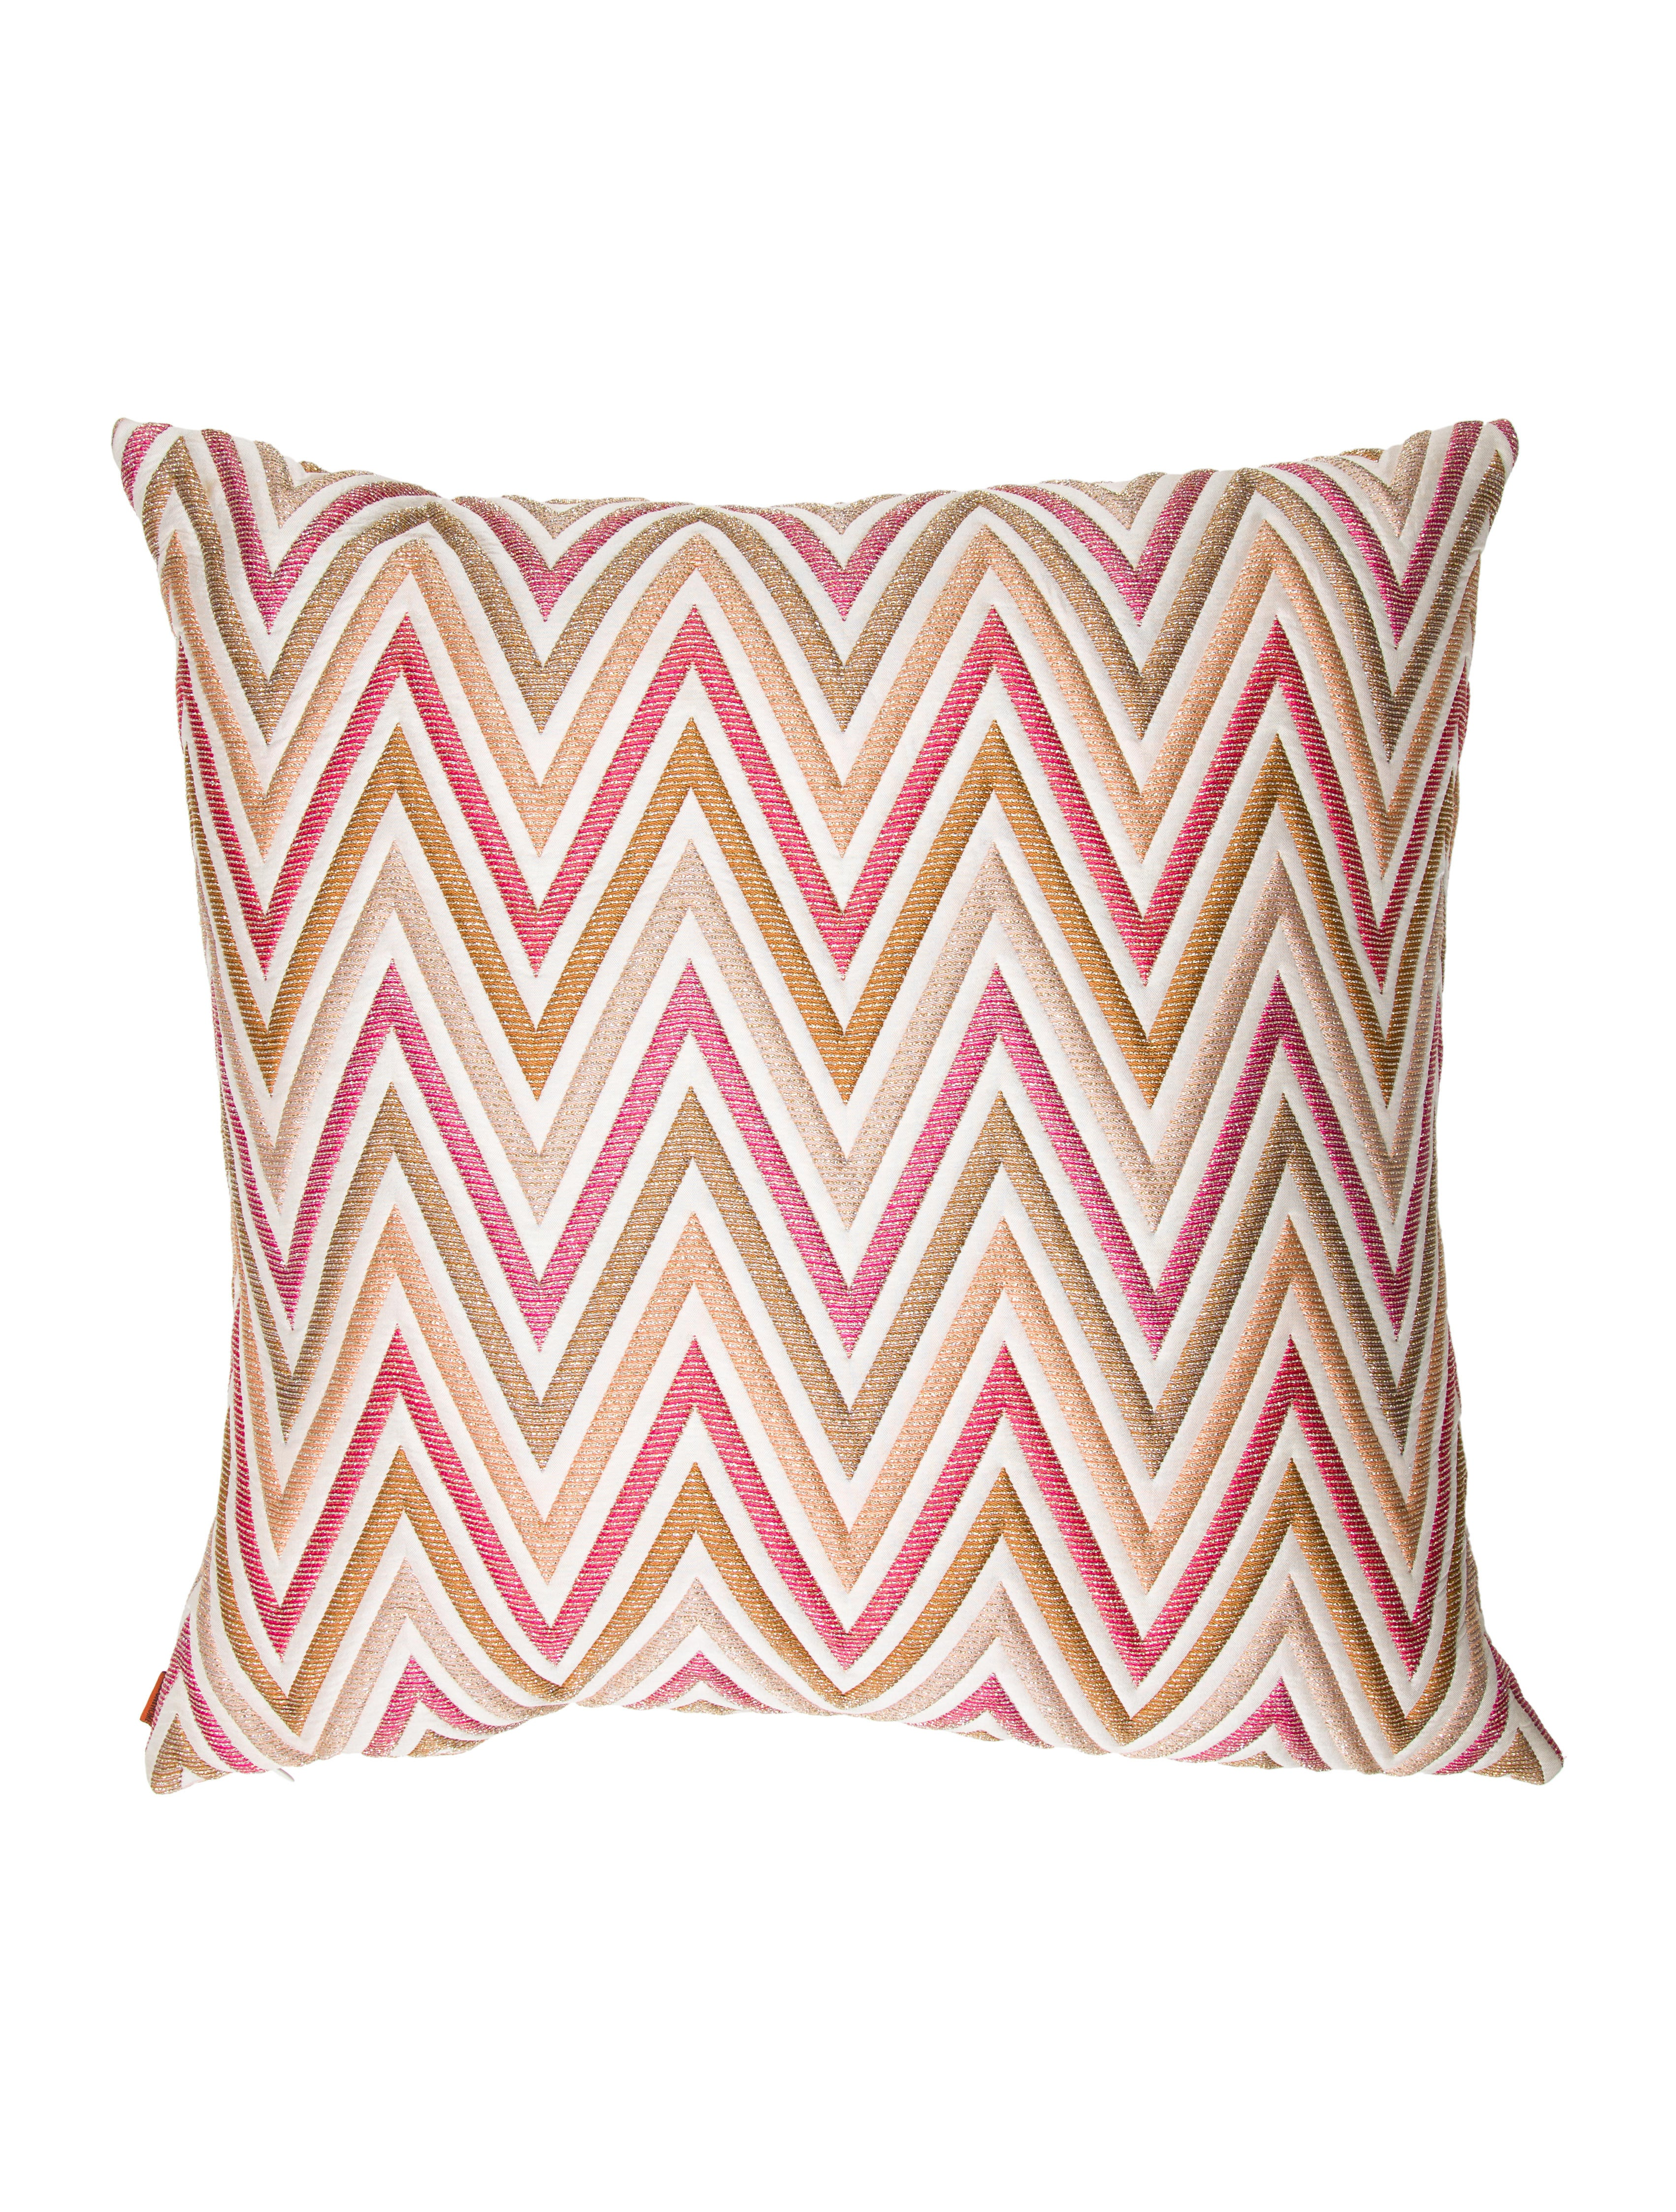 pattern showcase trends pillows lily serena missoni covers estate real amp holding hamptons pillow